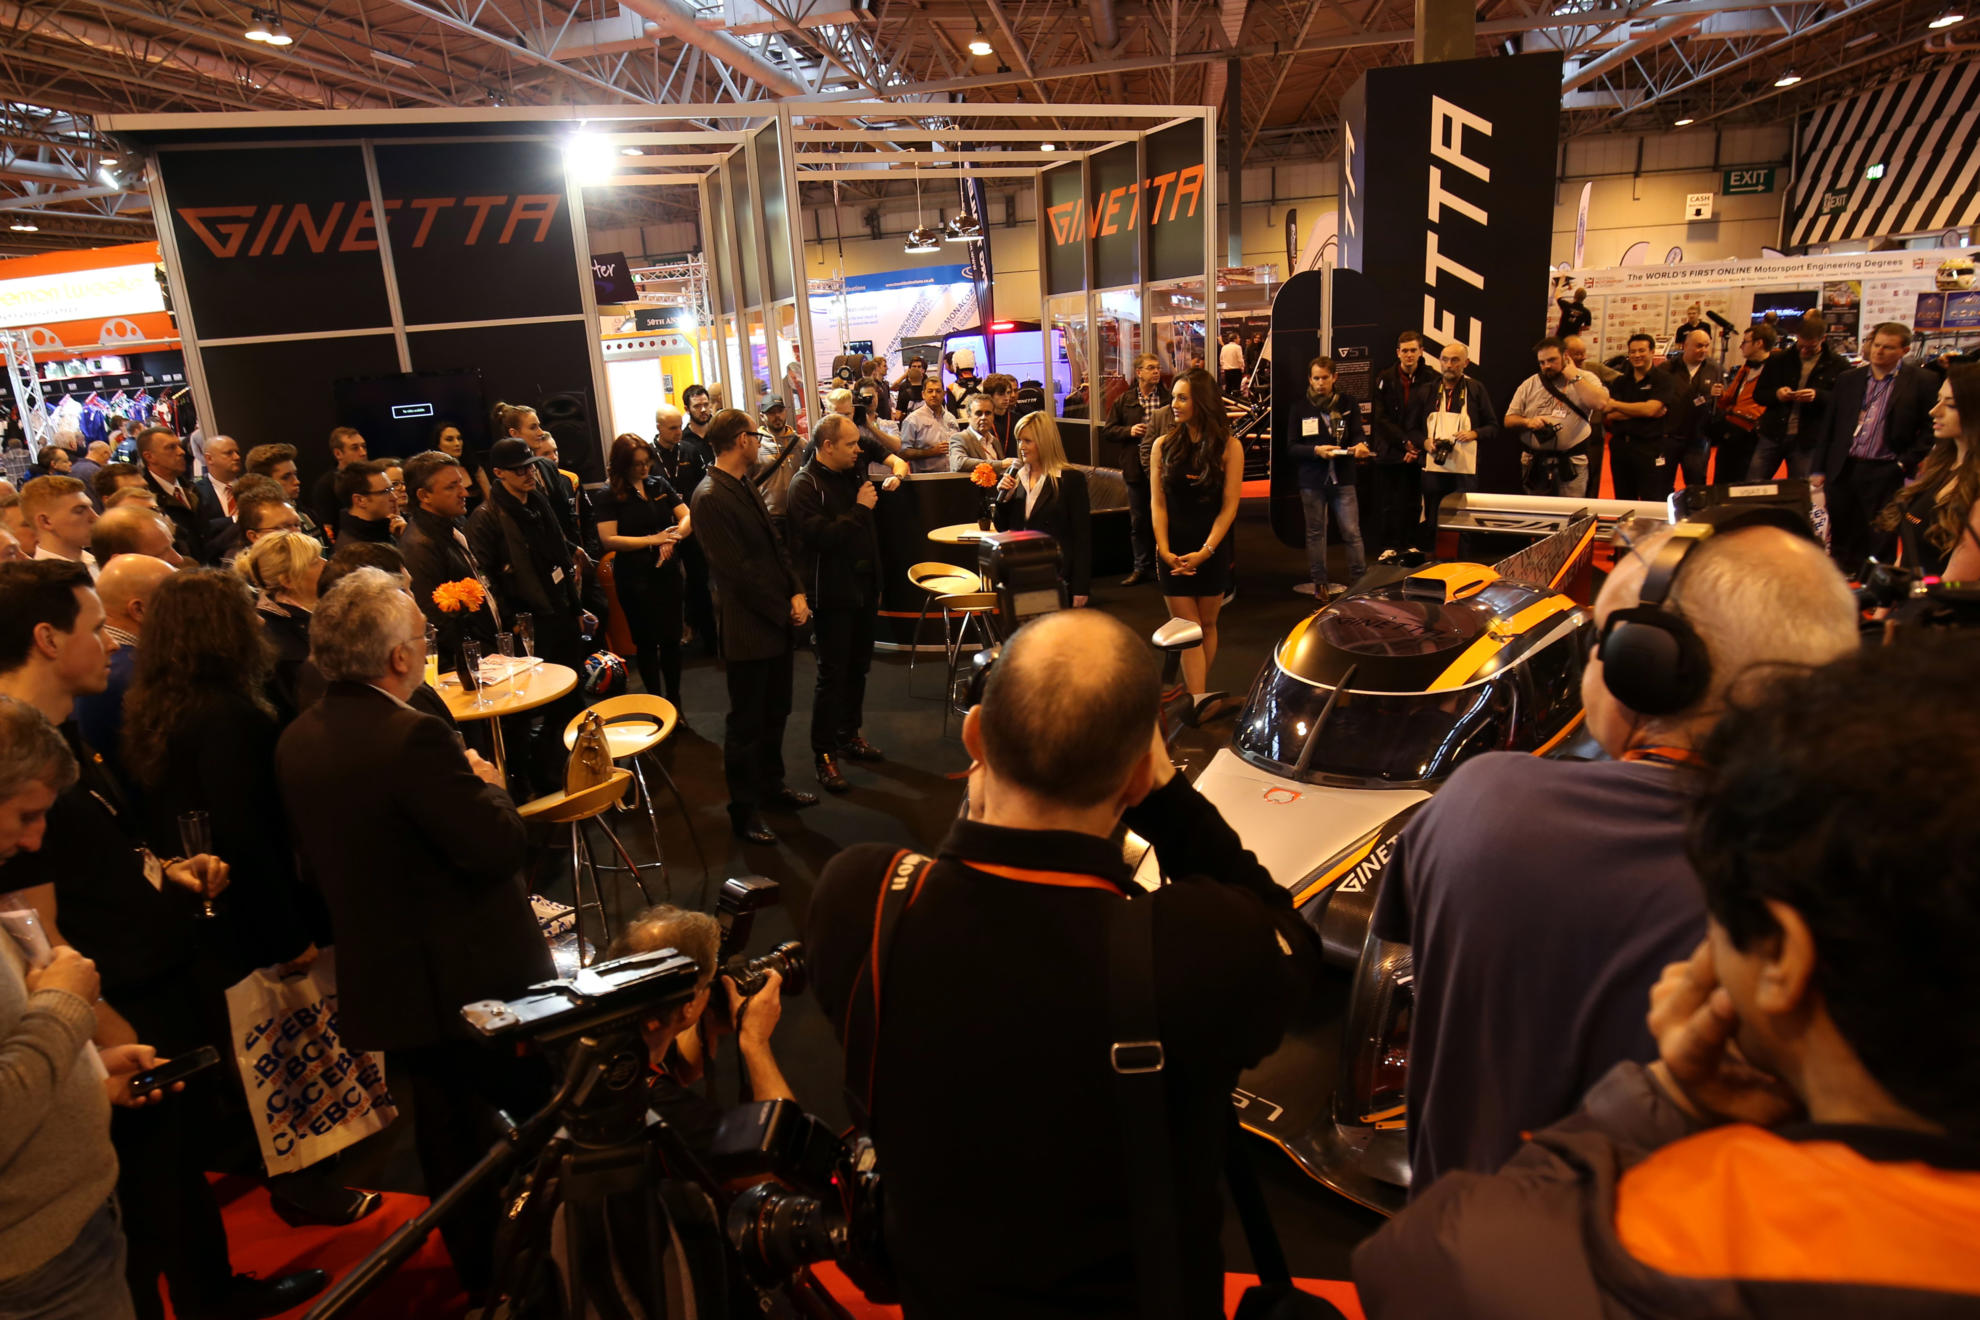 We're Unveiling The Ginetta LMP1 At Autosport International